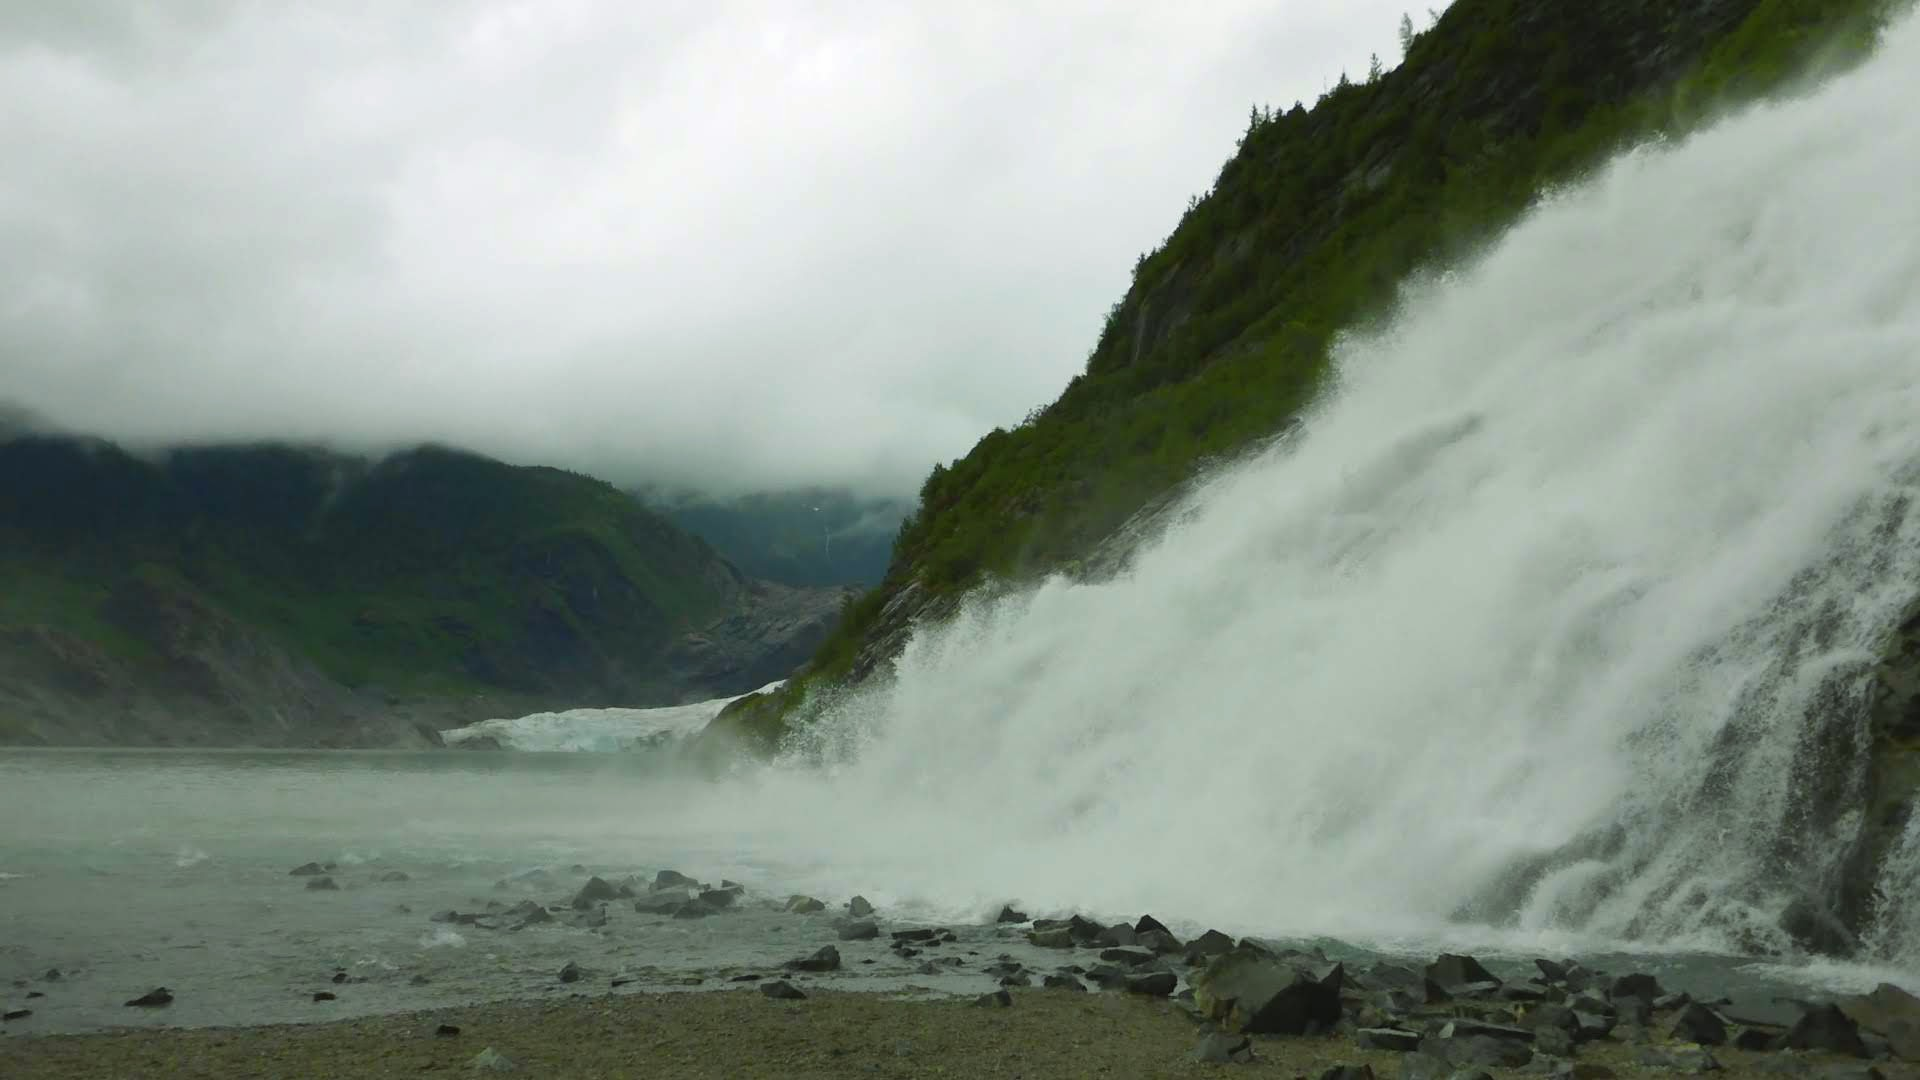 A waterfall tumbles from above against rocks into a glacier fed lake. There is a glacier in the background. It is a dark, overcast and rainy day on an Alaska itinerary